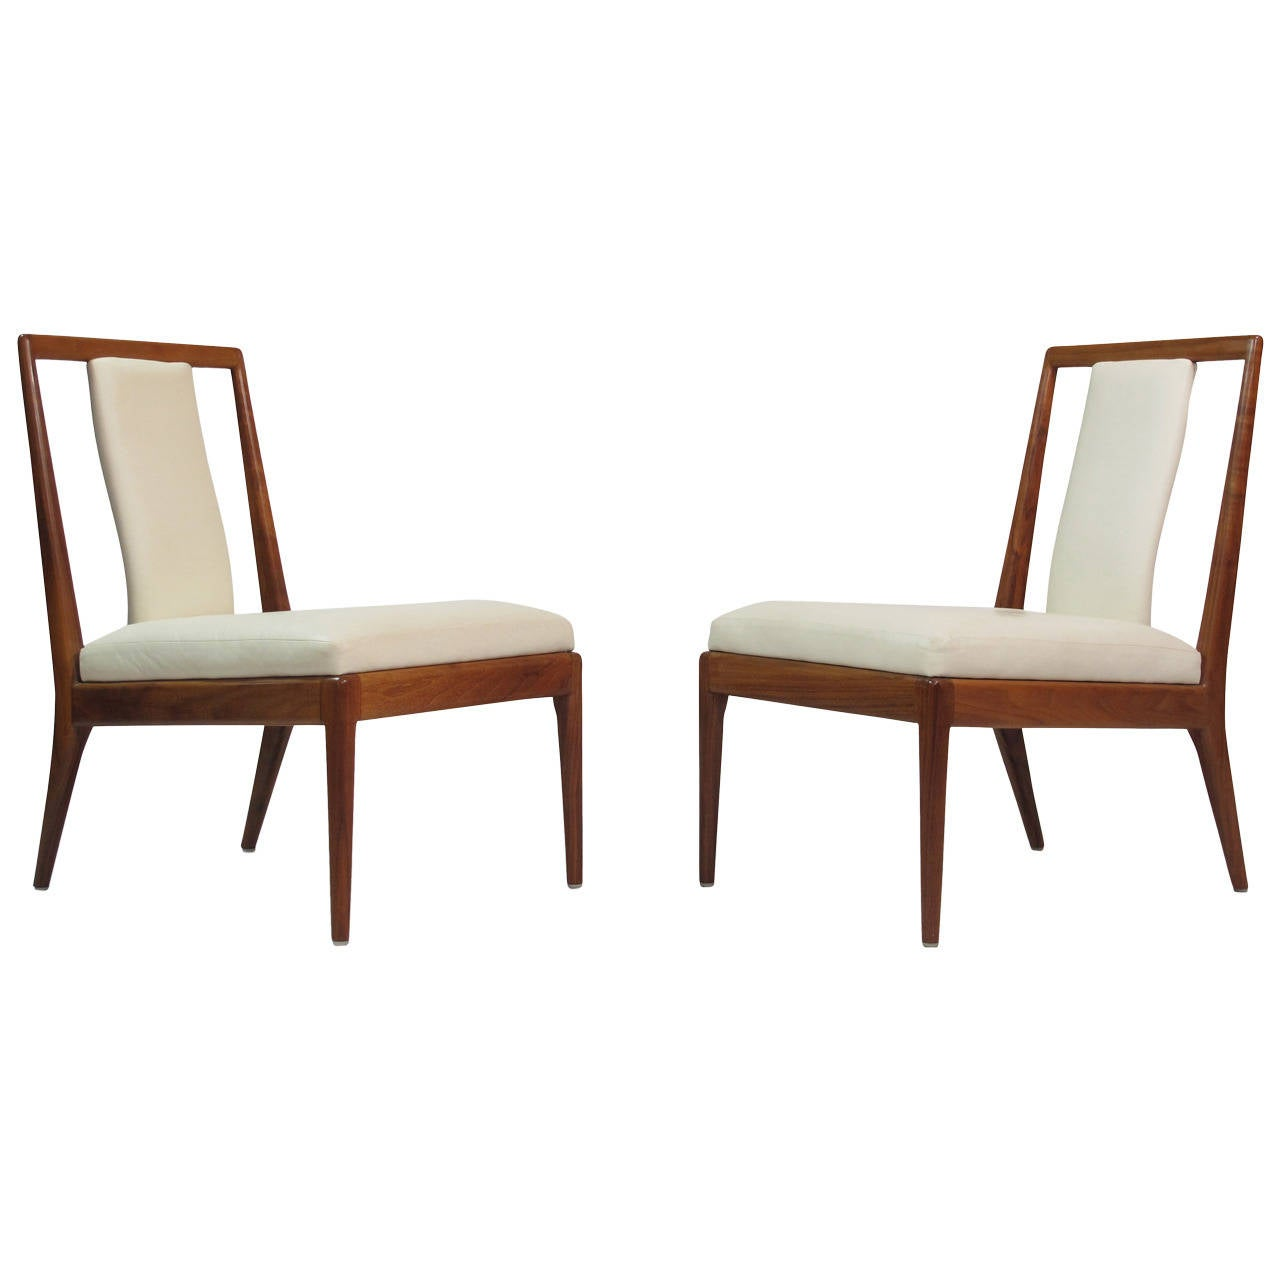 white leather slipper chair office chairs hanoi walnut for sale at 1stdibs